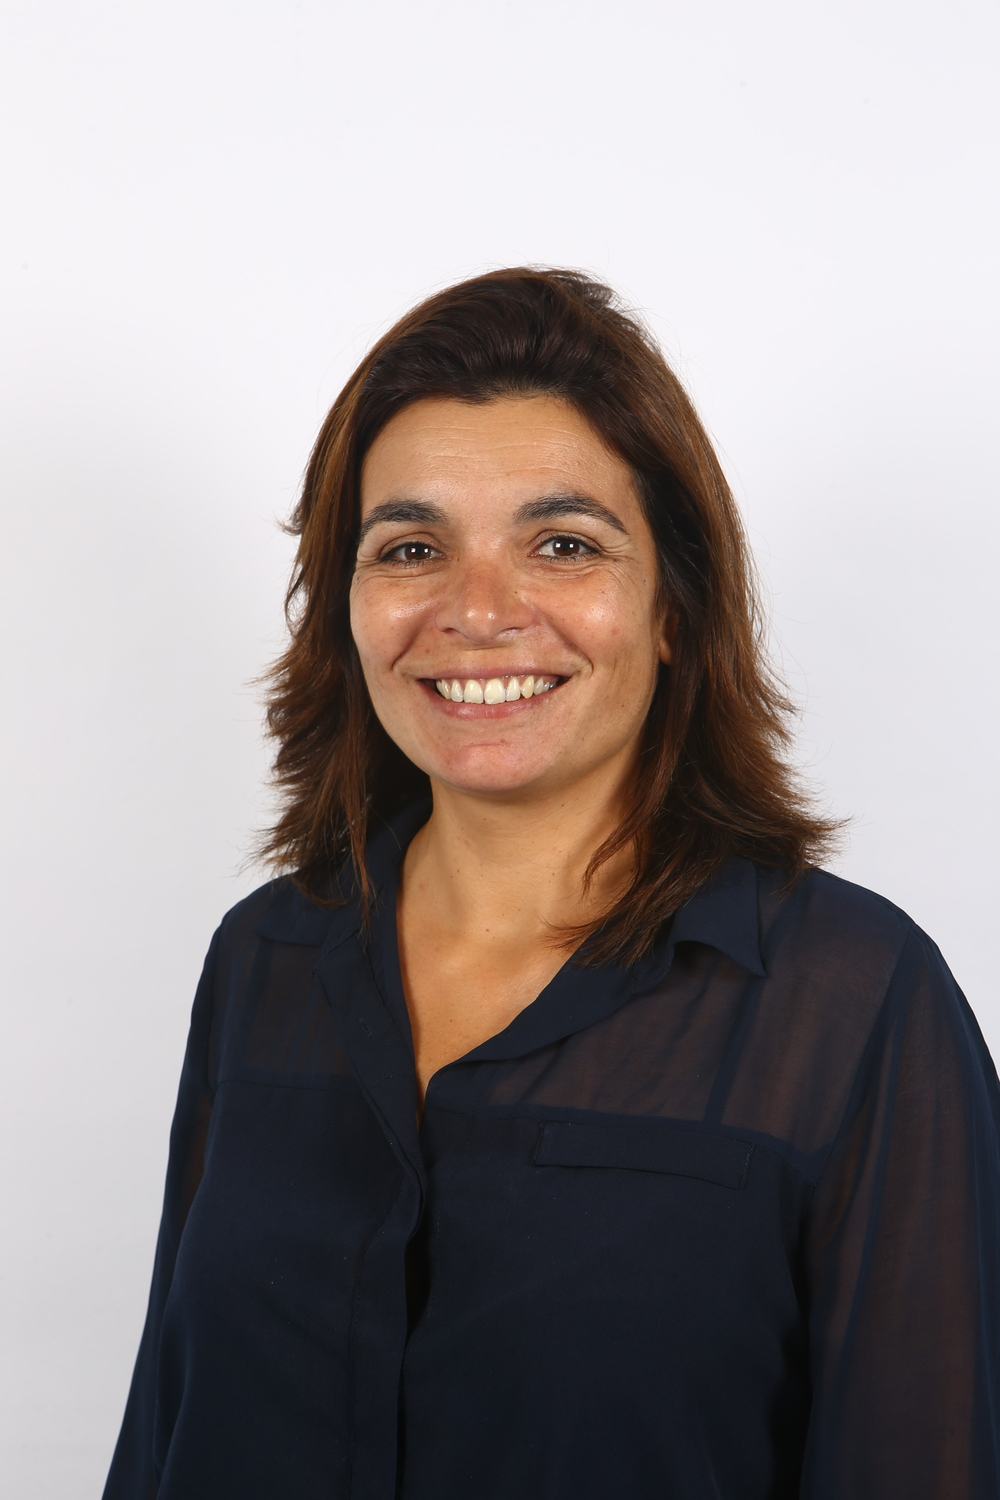 Ms. Ana Alves - Head Teacher